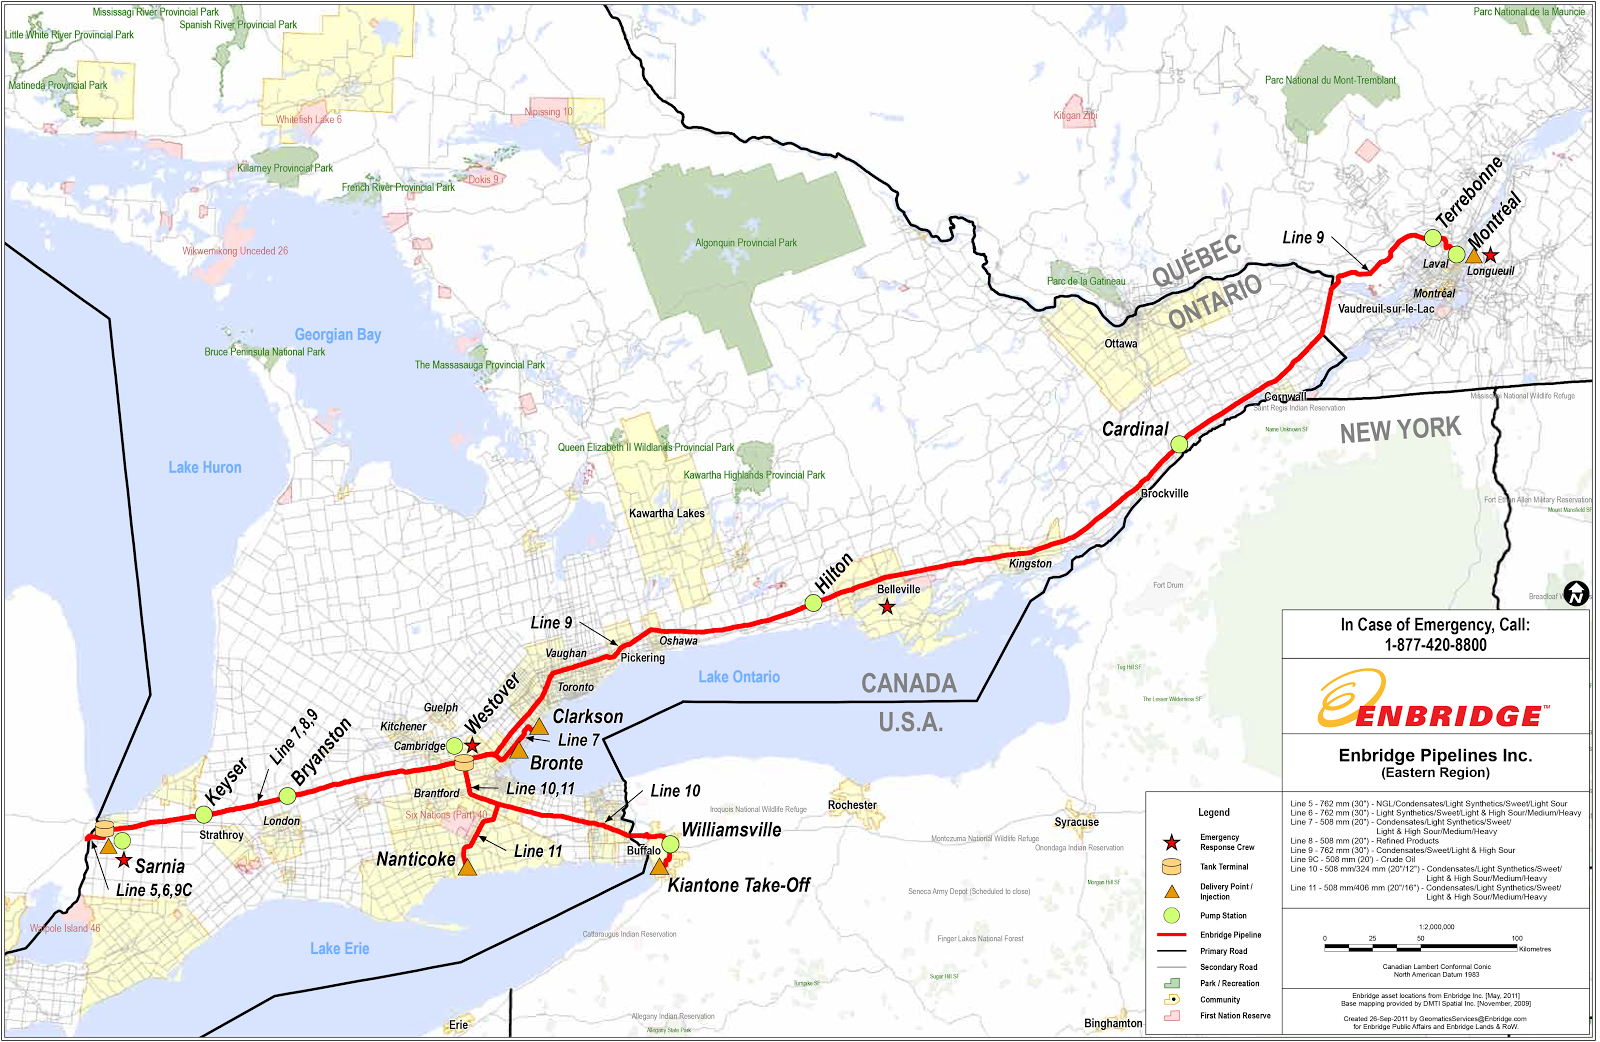 Enbridge oil pipelines in Ontario